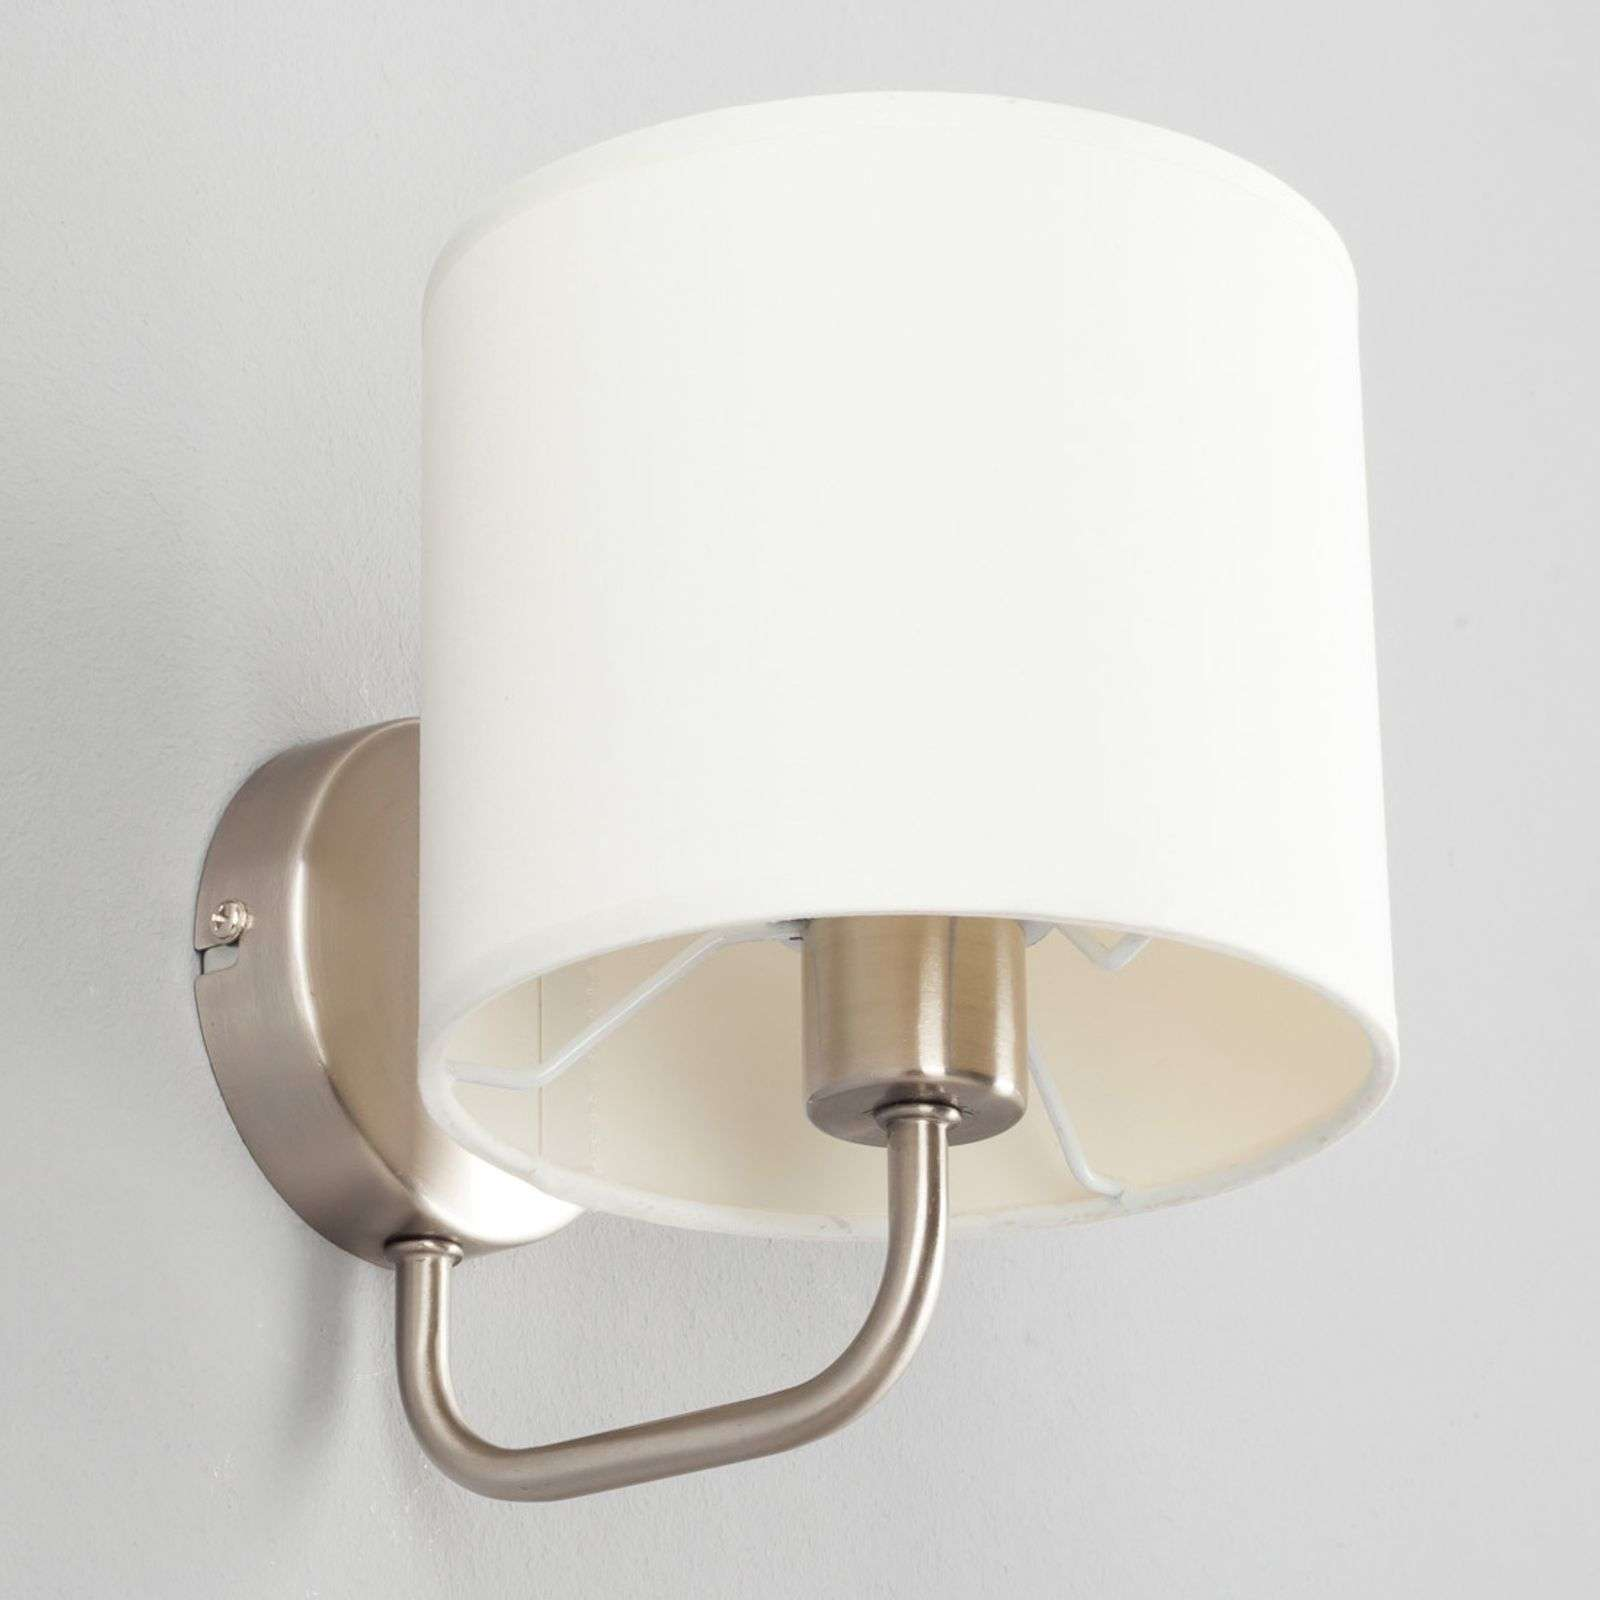 Witte stoffen wandlamp Fenria met E14-LED